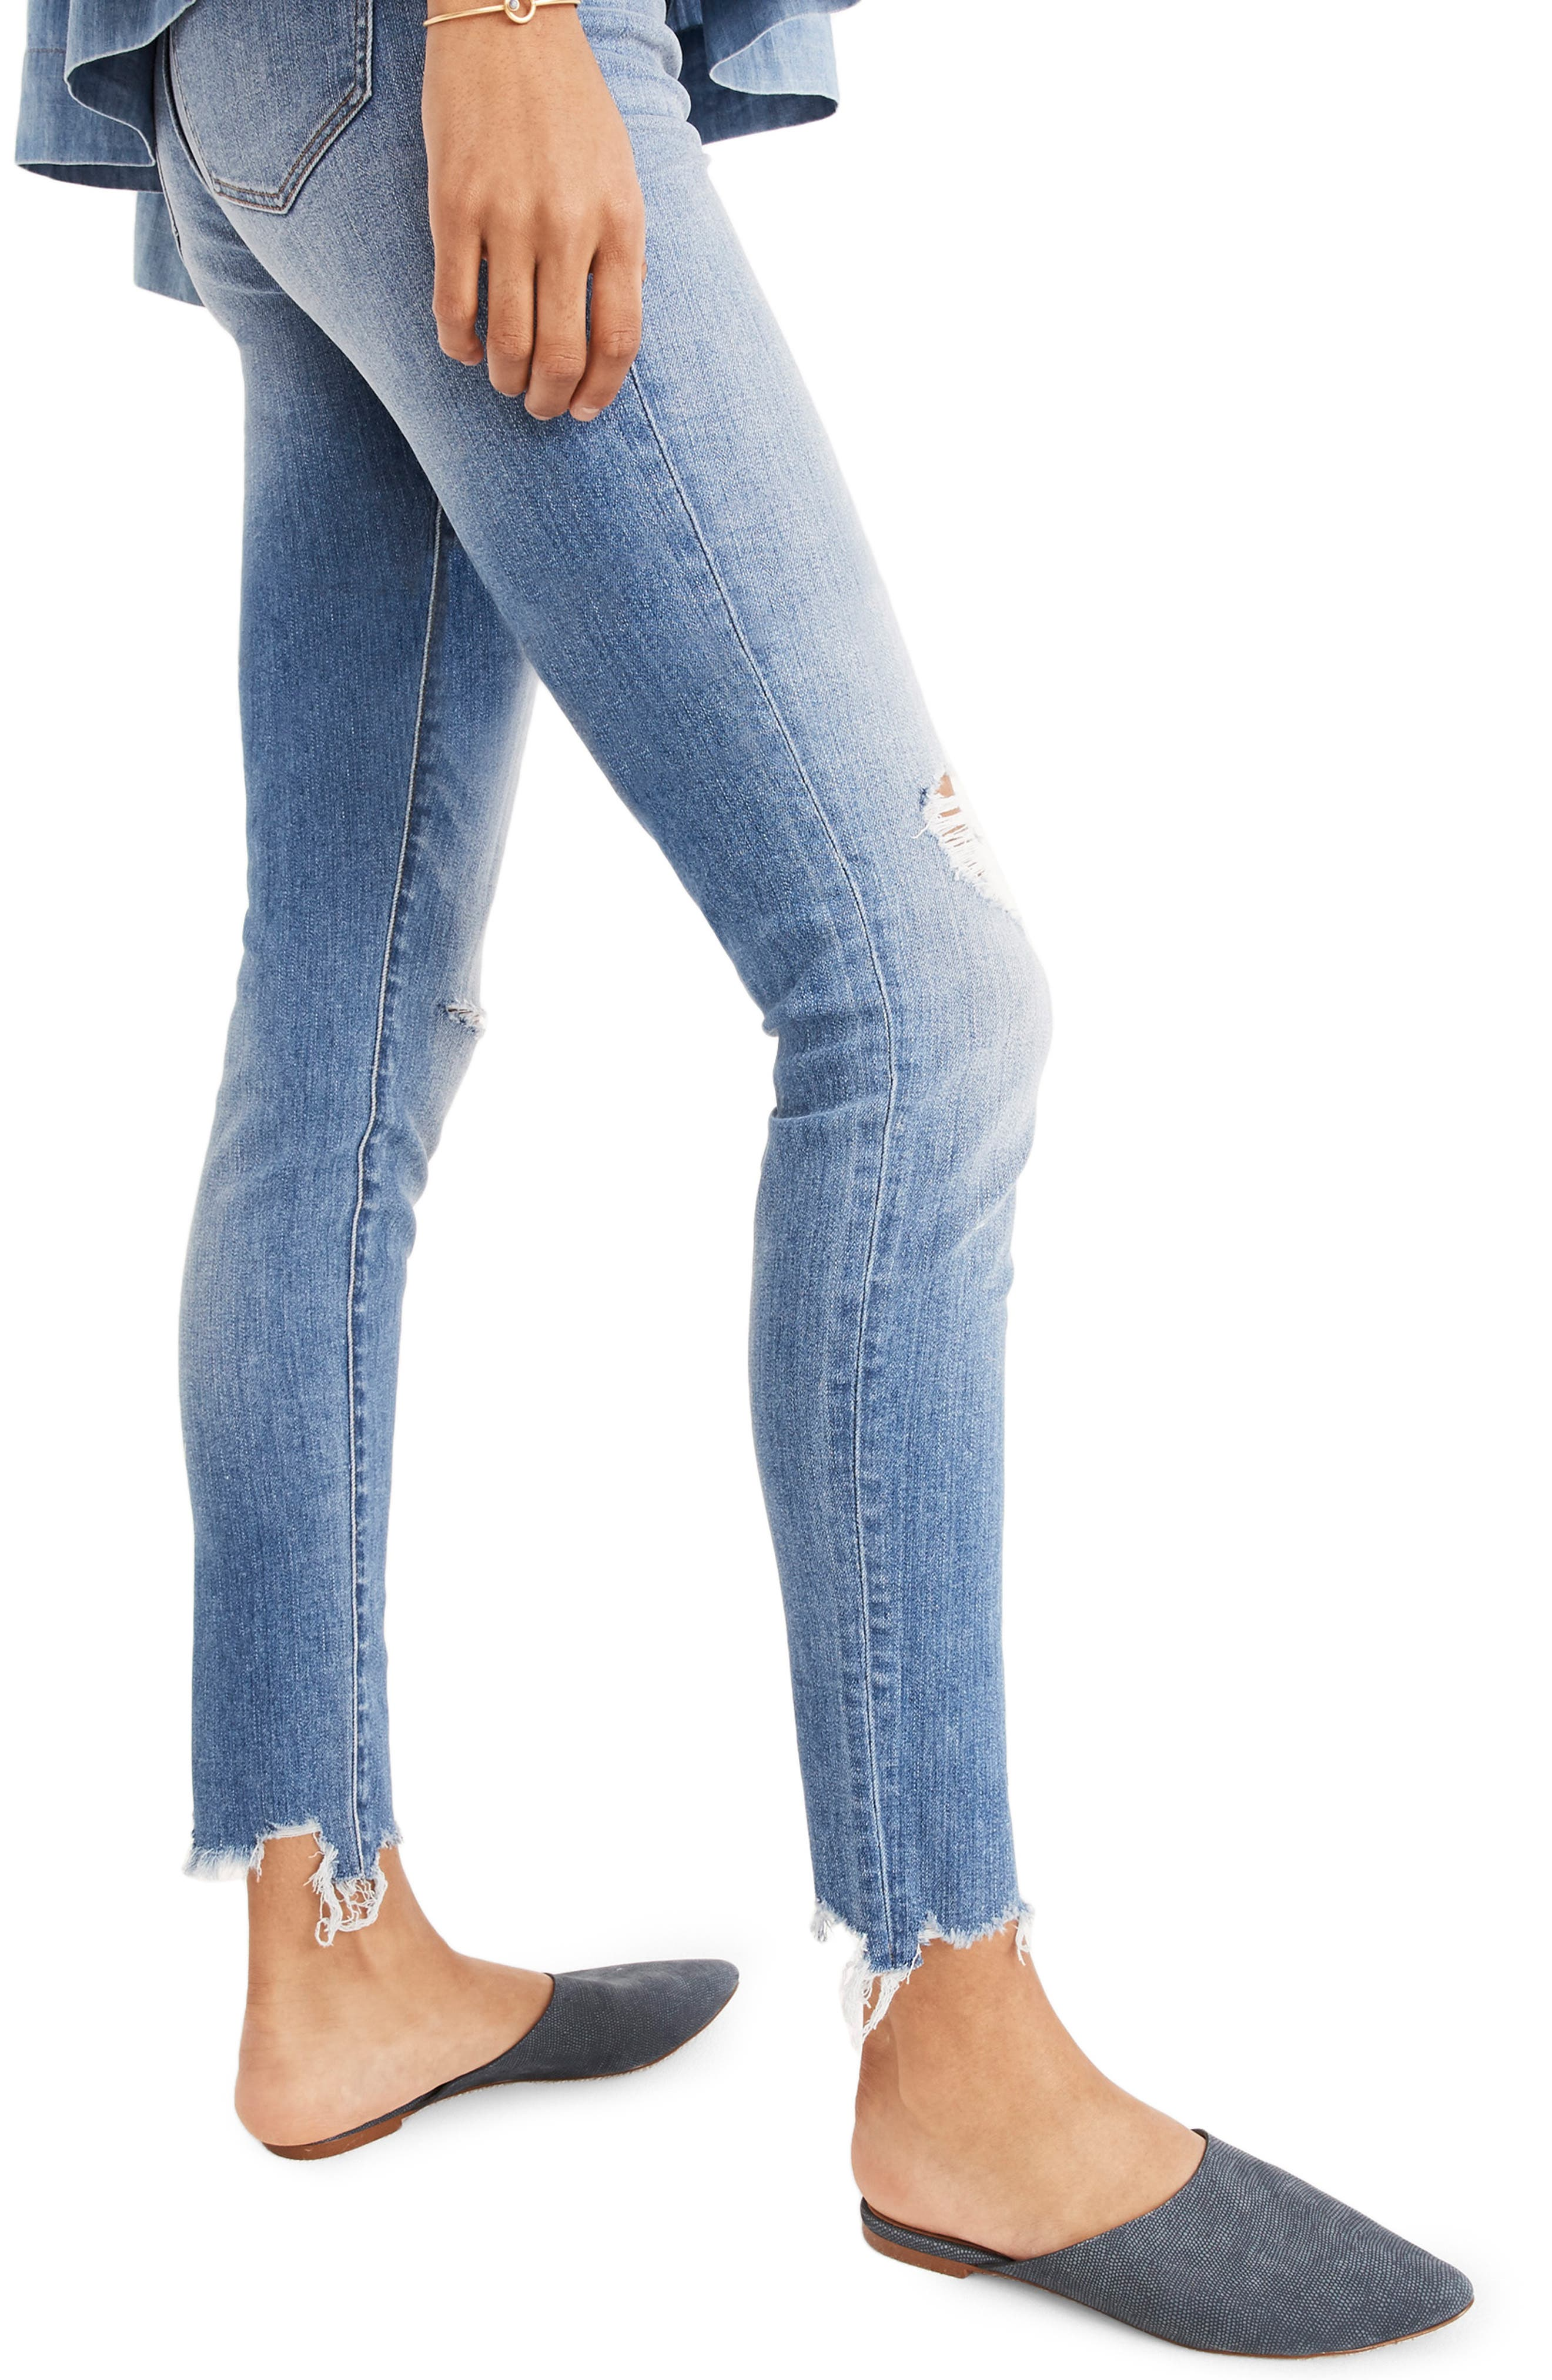 9-Inch Torn Knee Skinny Jeans,                             Alternate thumbnail 3, color,                             FRANKIE